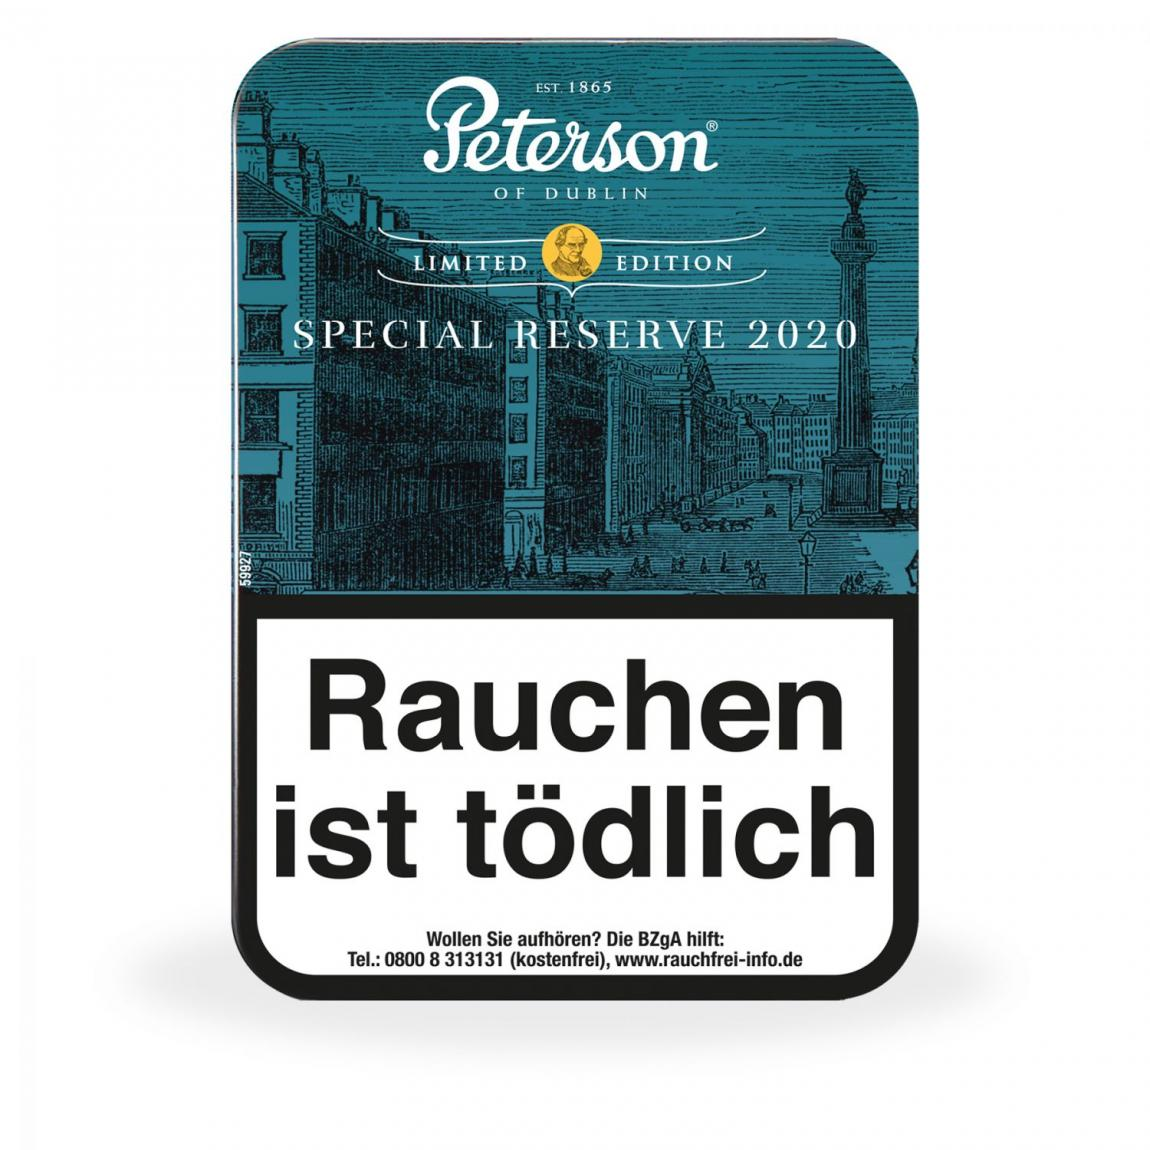 Peterson »Special Reserve 2020« Limited Edition, 100g